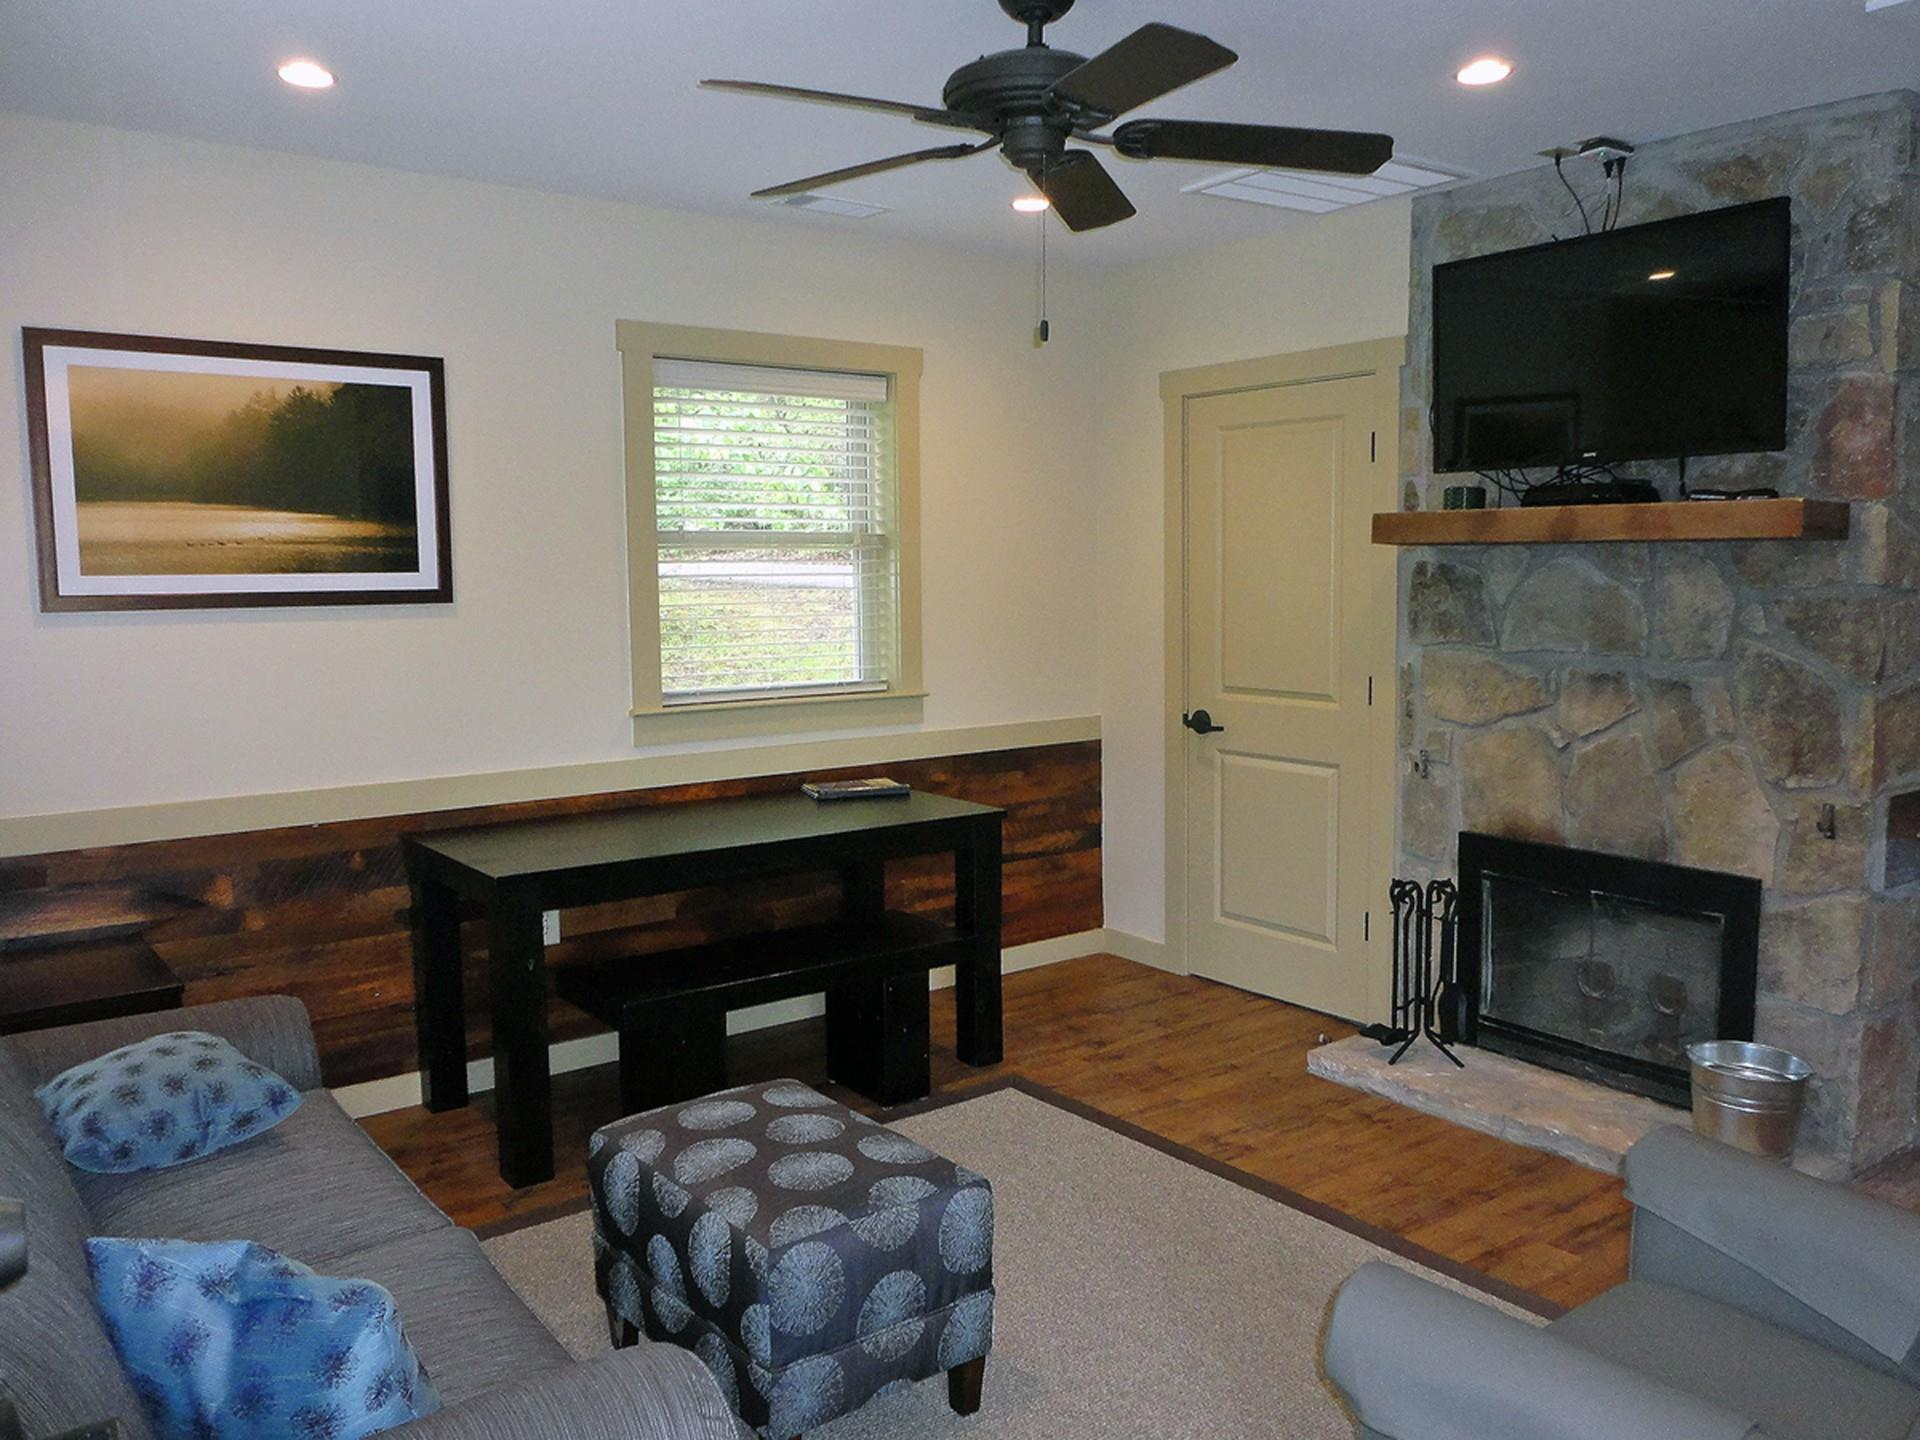 Inside view of cabin with stone fire place and tv and couch with ottoman and table and chairs with natural light.